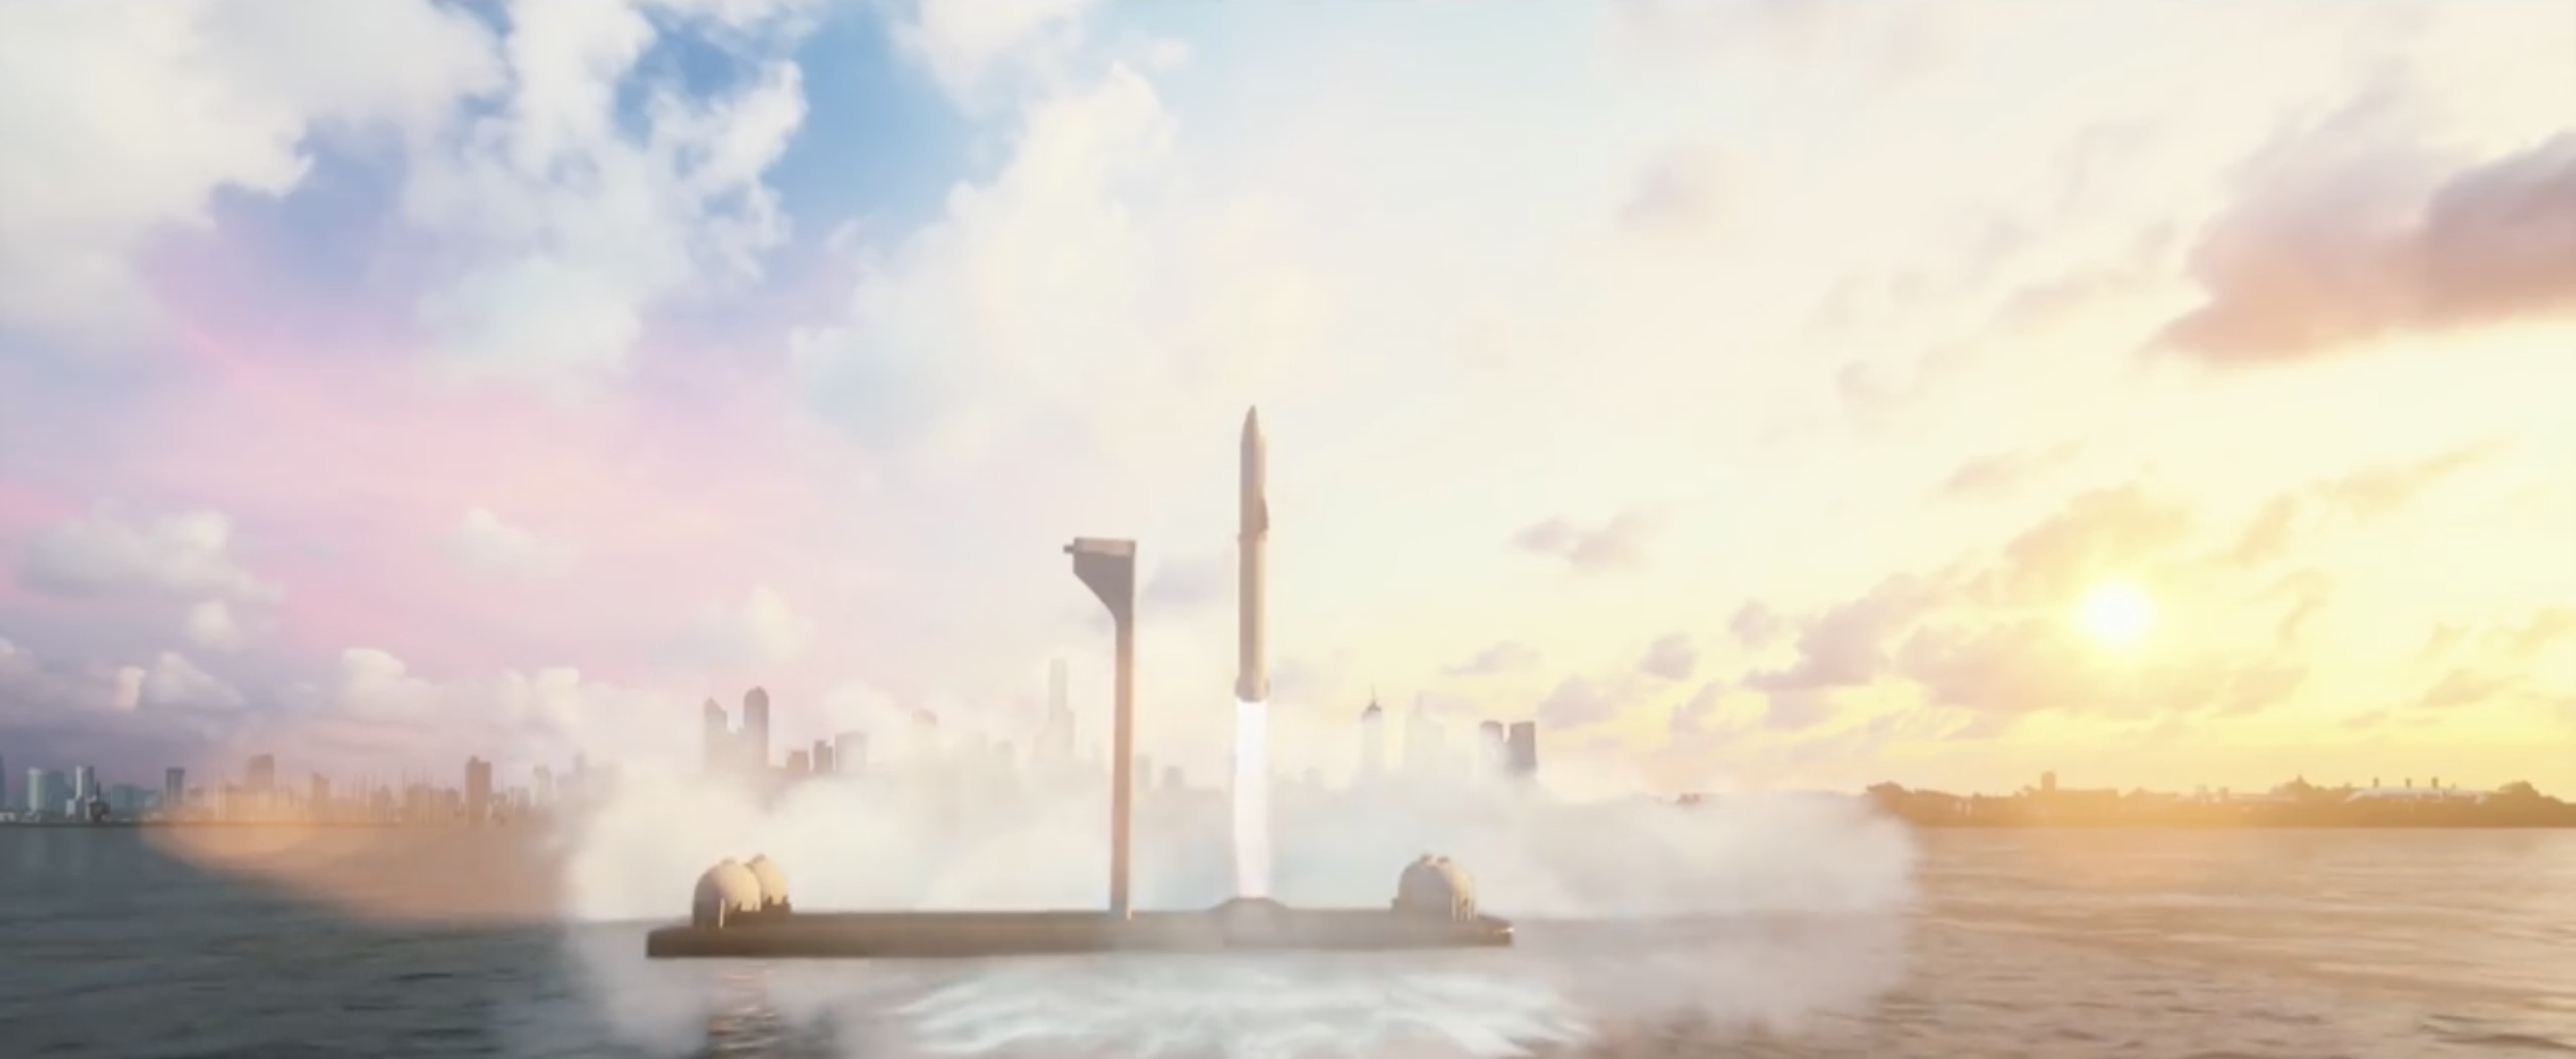 Elon Musk wants to combine Boring Company's Hyperloop with SpaceX's rockets to get anywhere on earth in less than an hour